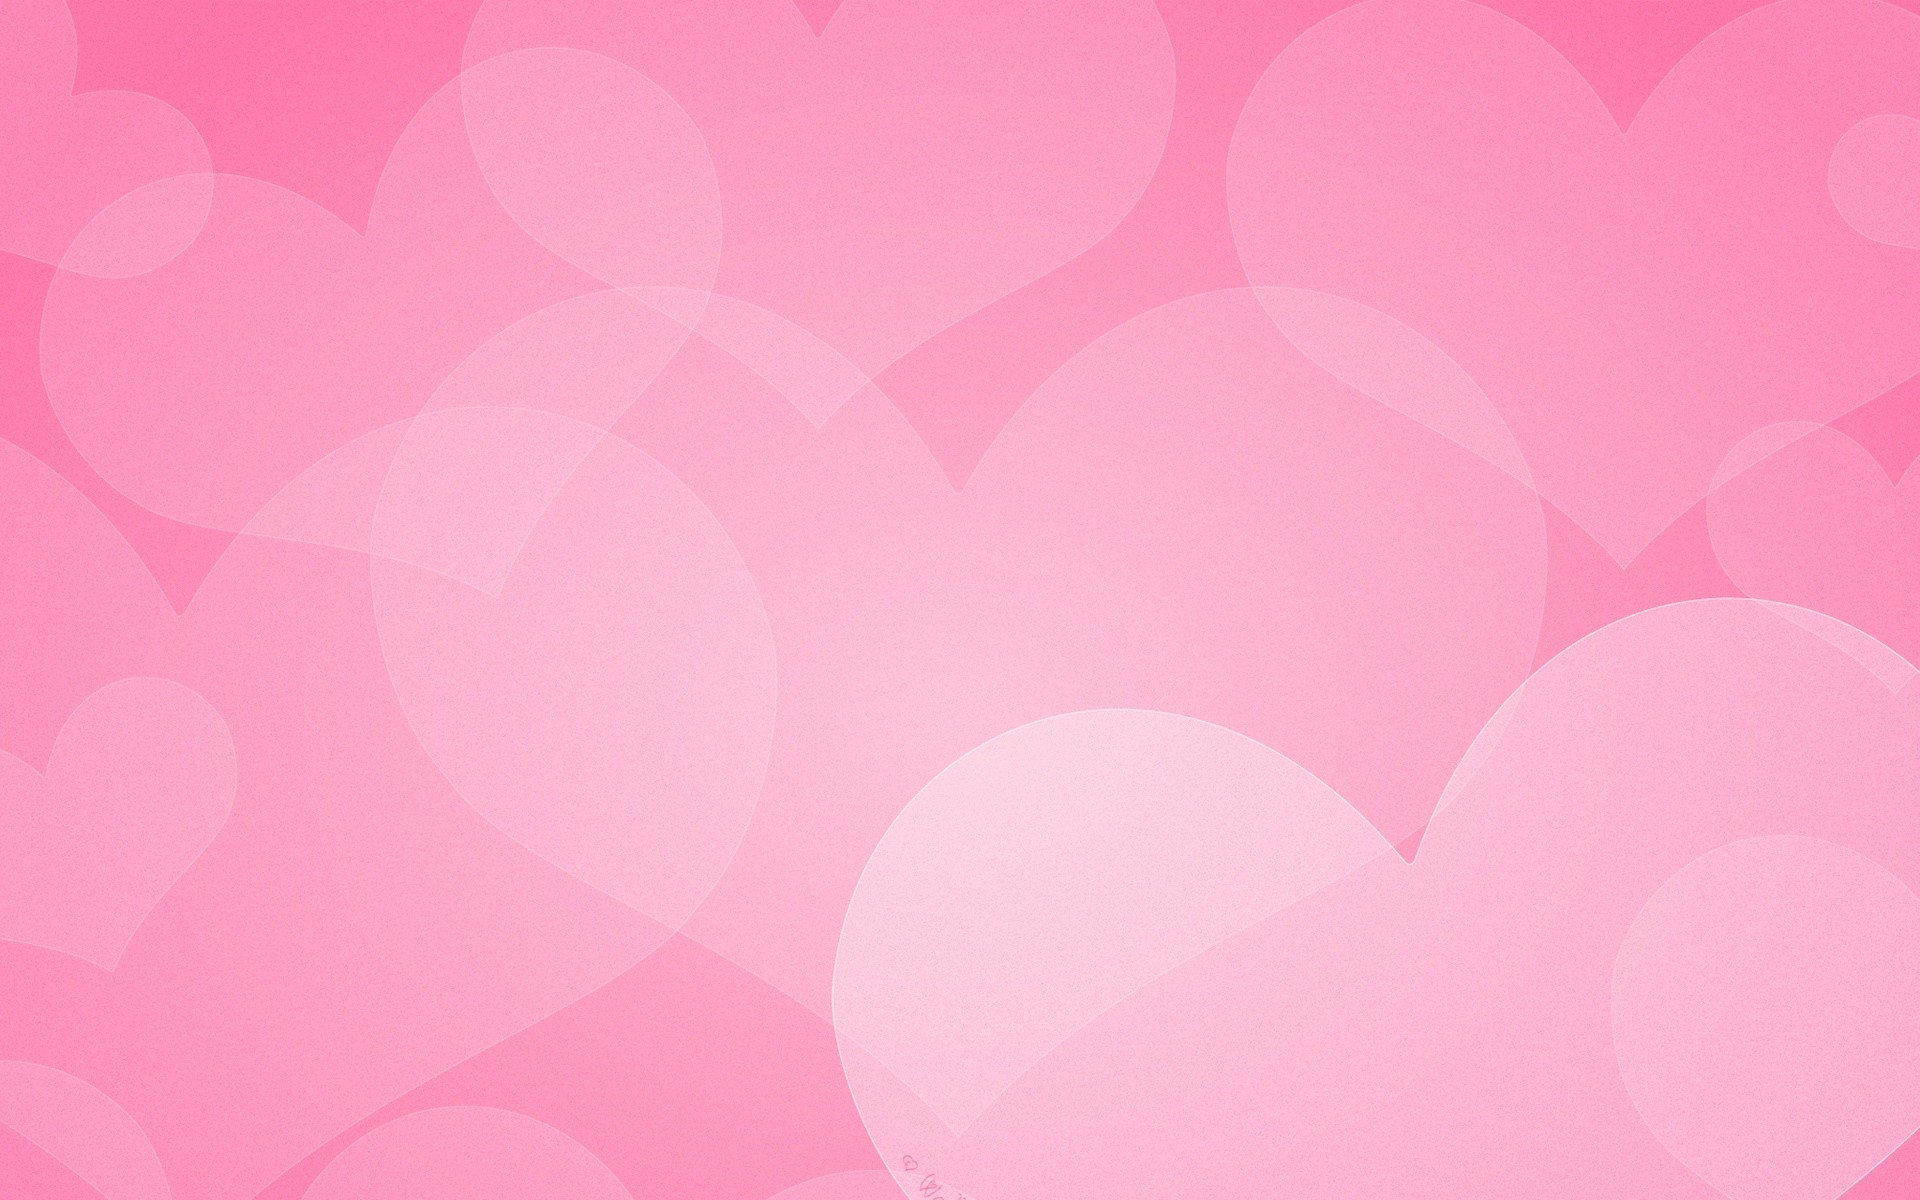 Pink Hearts Wallpaper Wallpapertag